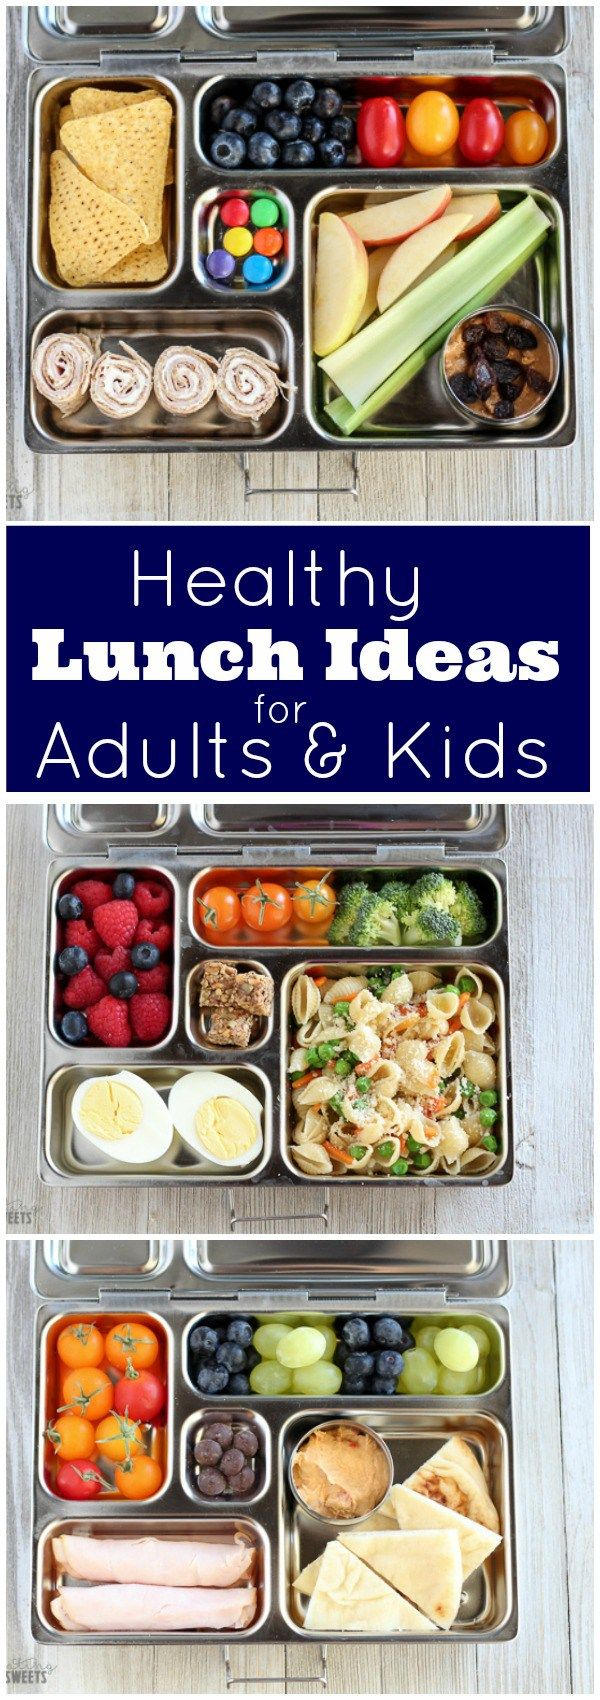 Healthy Lunch Ideas for Kids and Adults - Celebrating Sweets